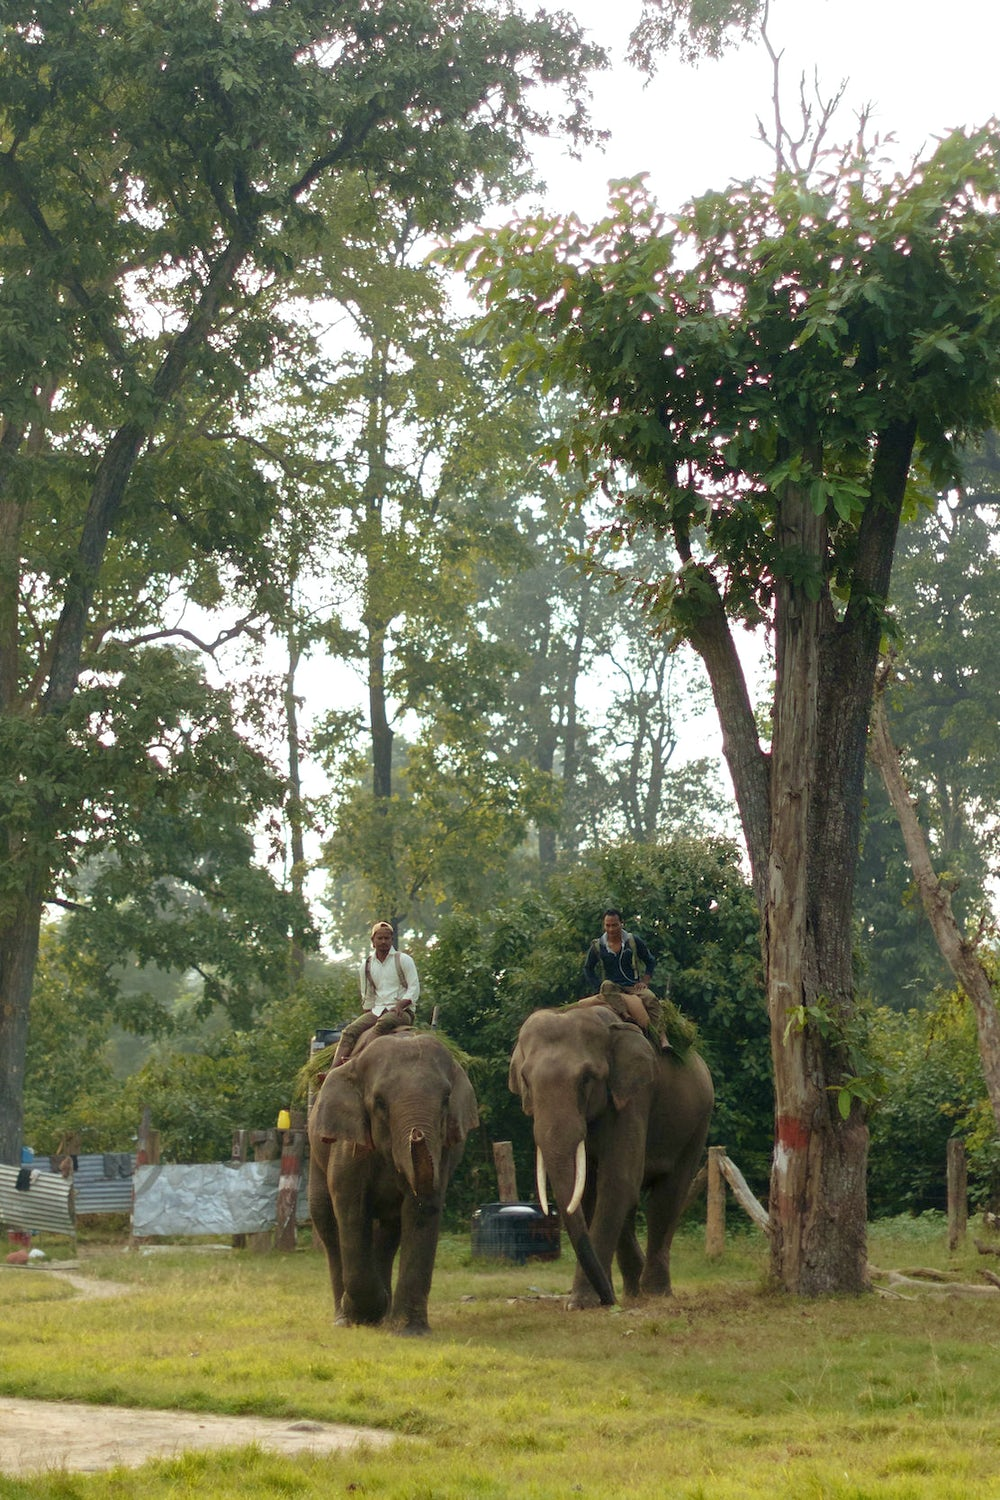 Mahouts, or elephant riders, guide elephants Samir and Ganesh inside Banke National Park. Photo by Joe Tobiason.